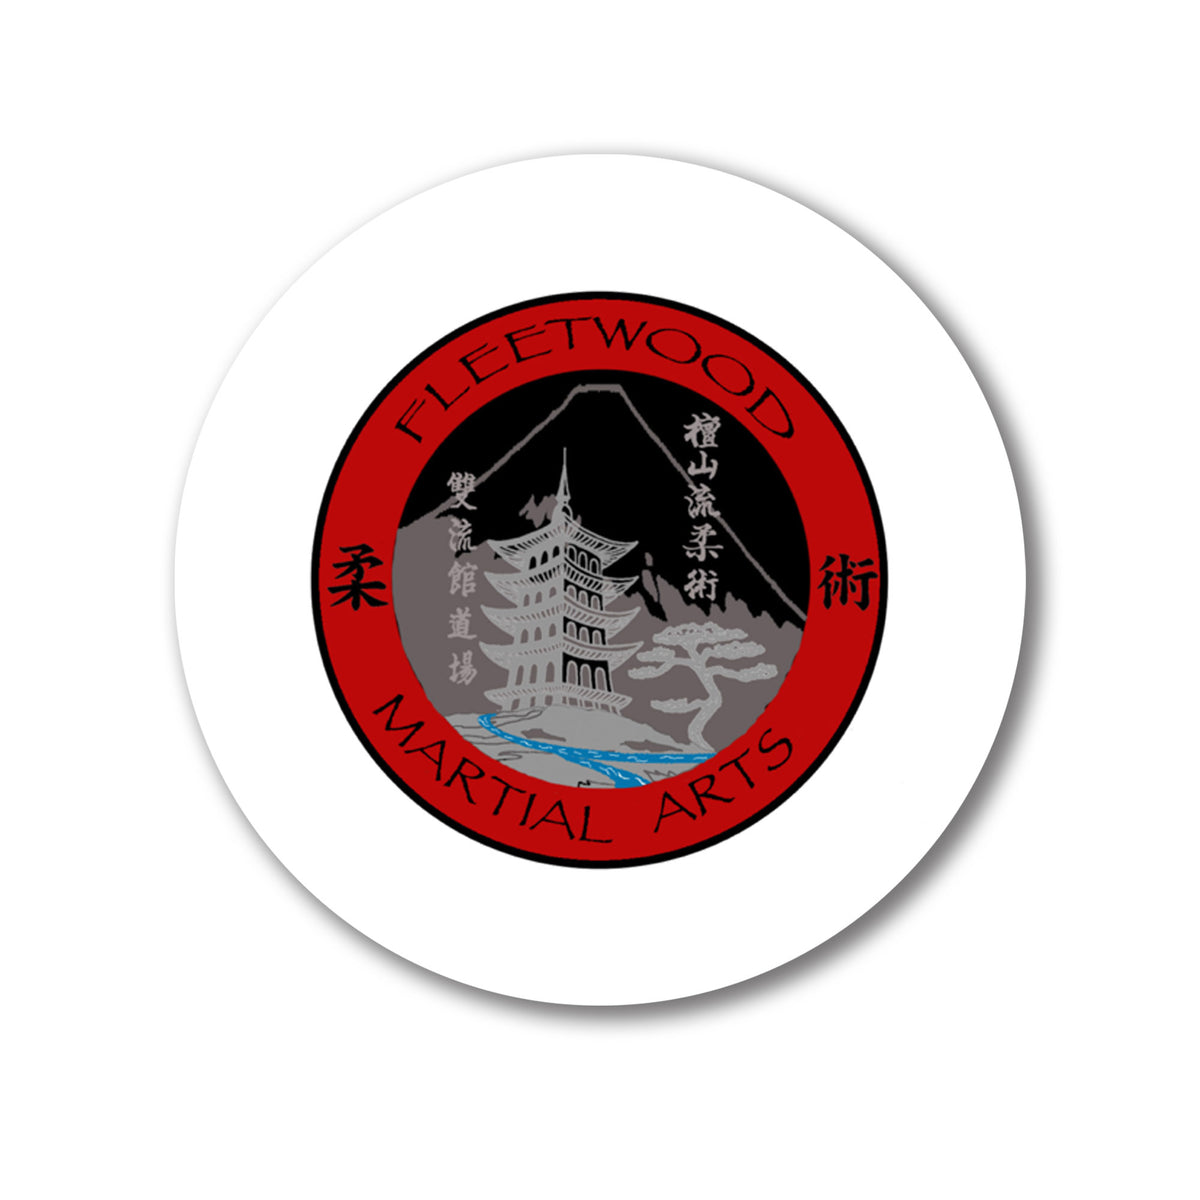 Fleetwood Martial Arts We Support PA Coasters